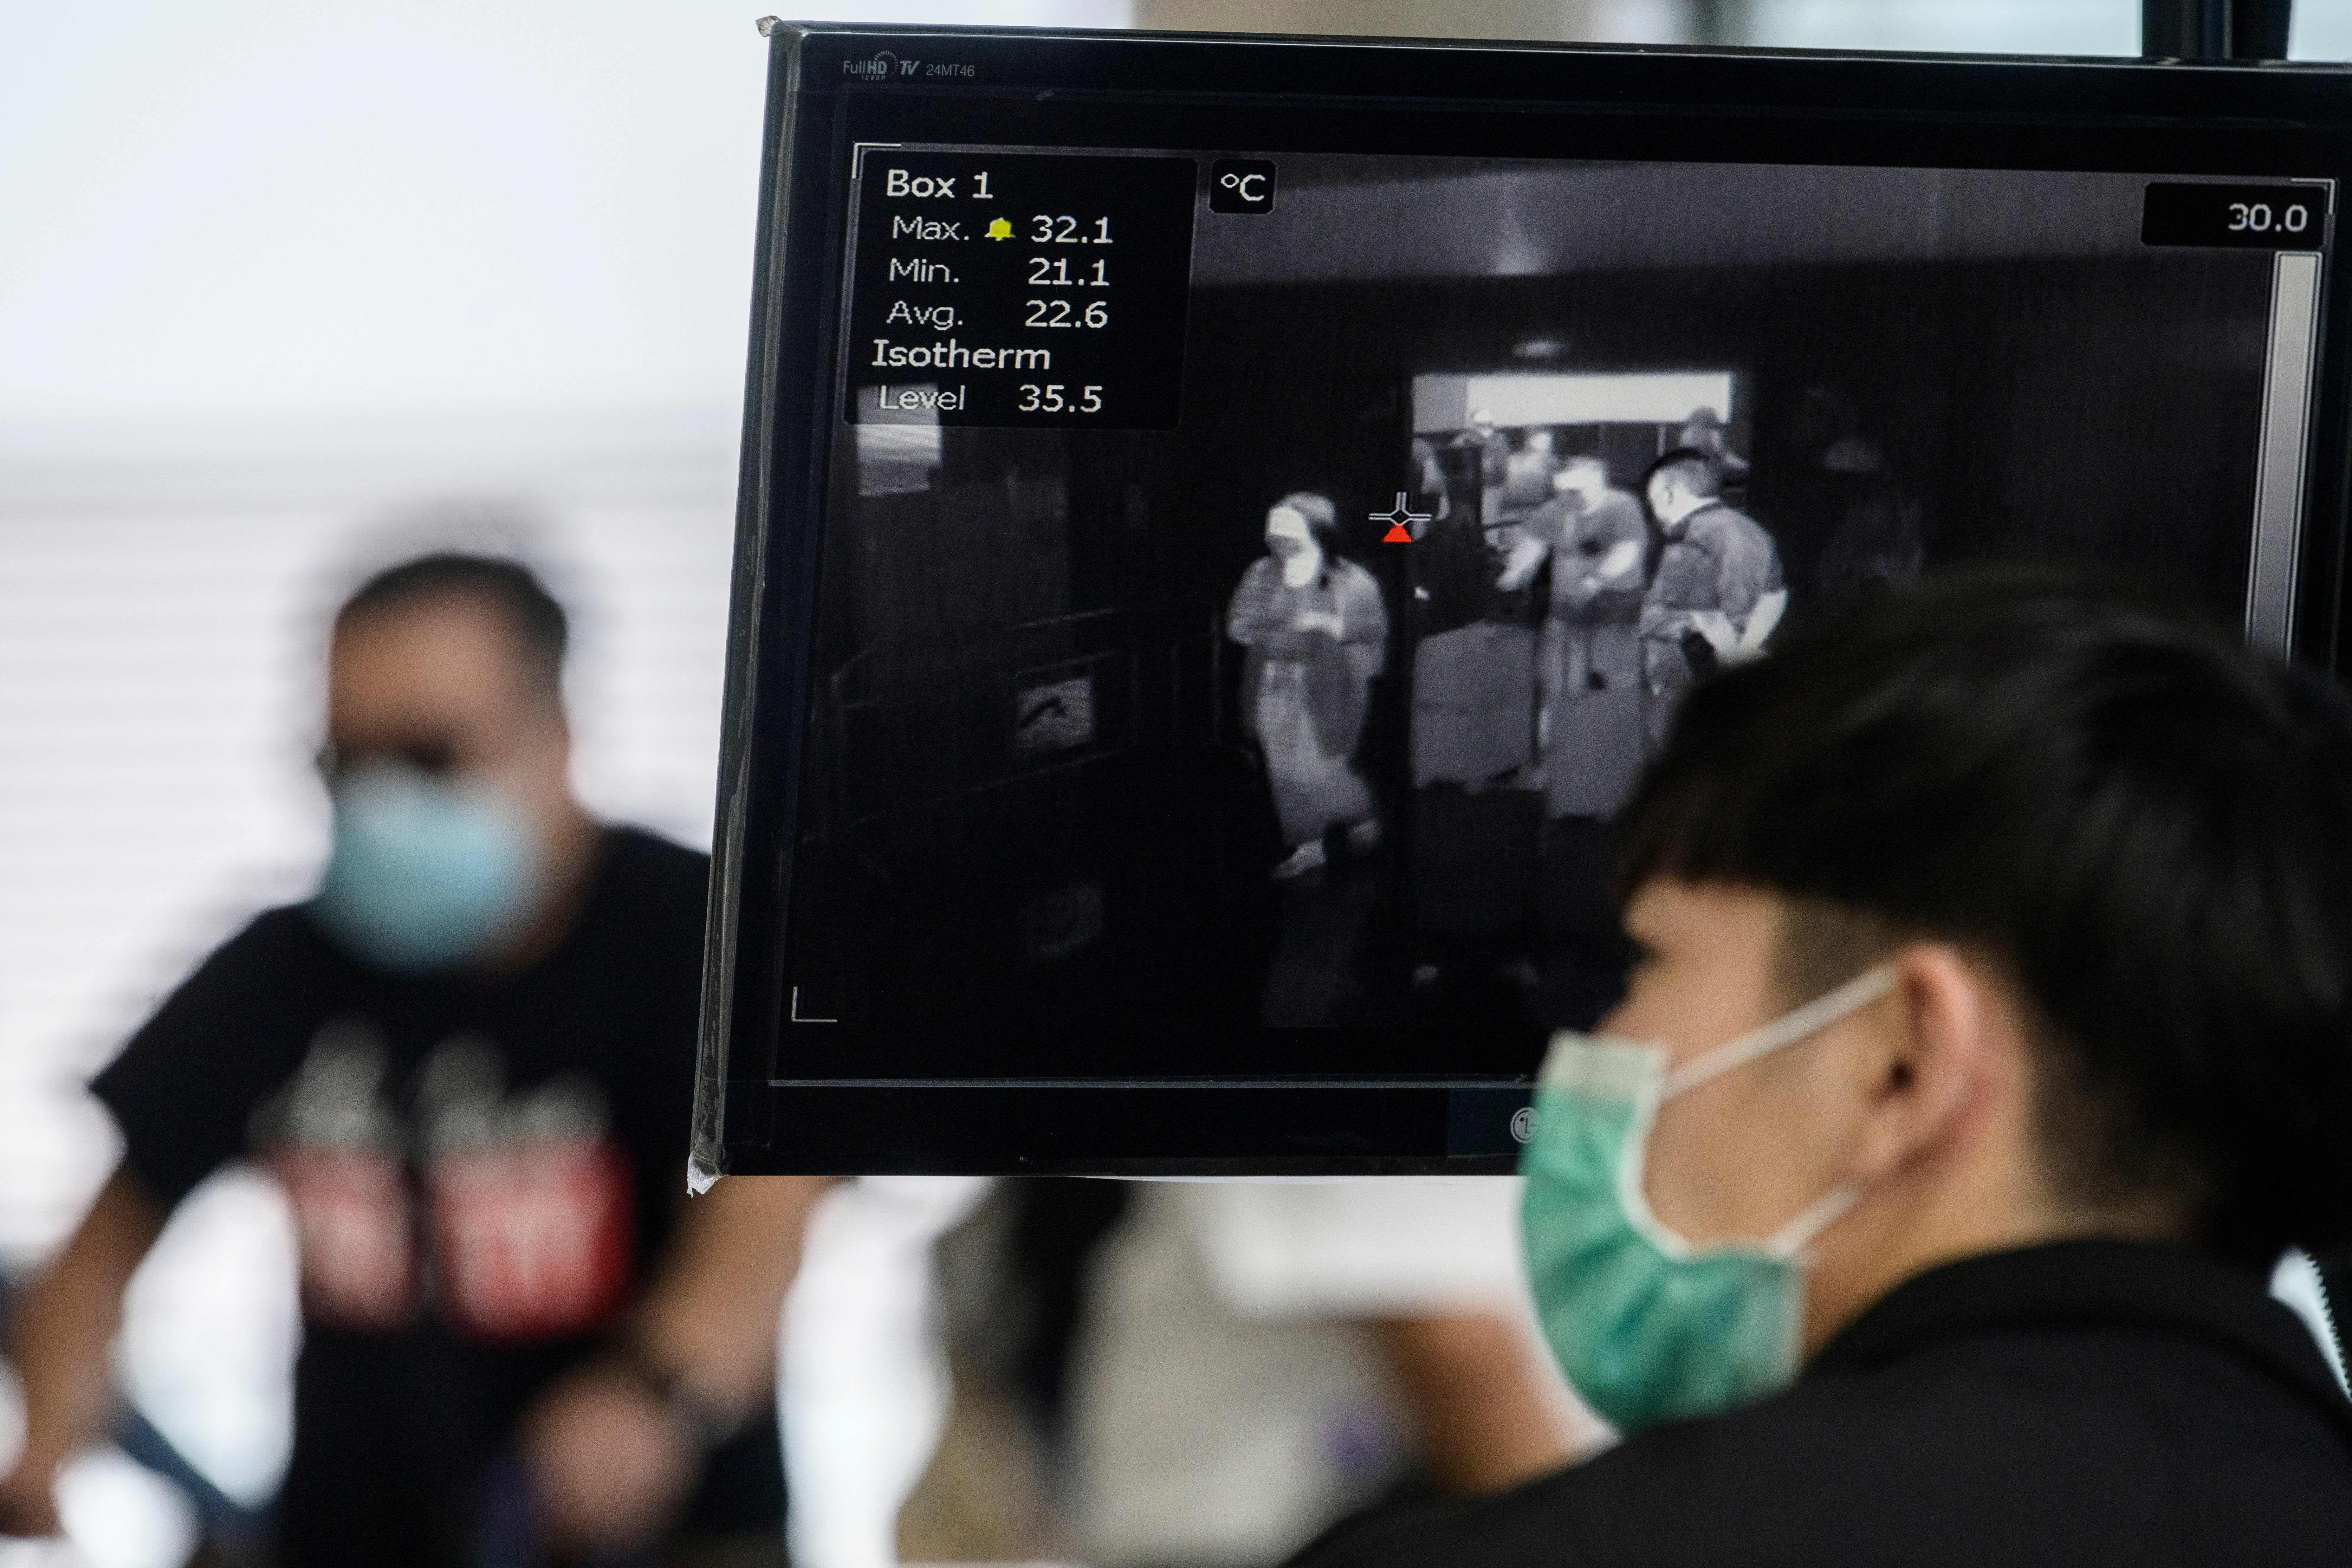 A worker at the Hong Kong International Airport monitors a thermal screening display as passengers arrive on March 10.